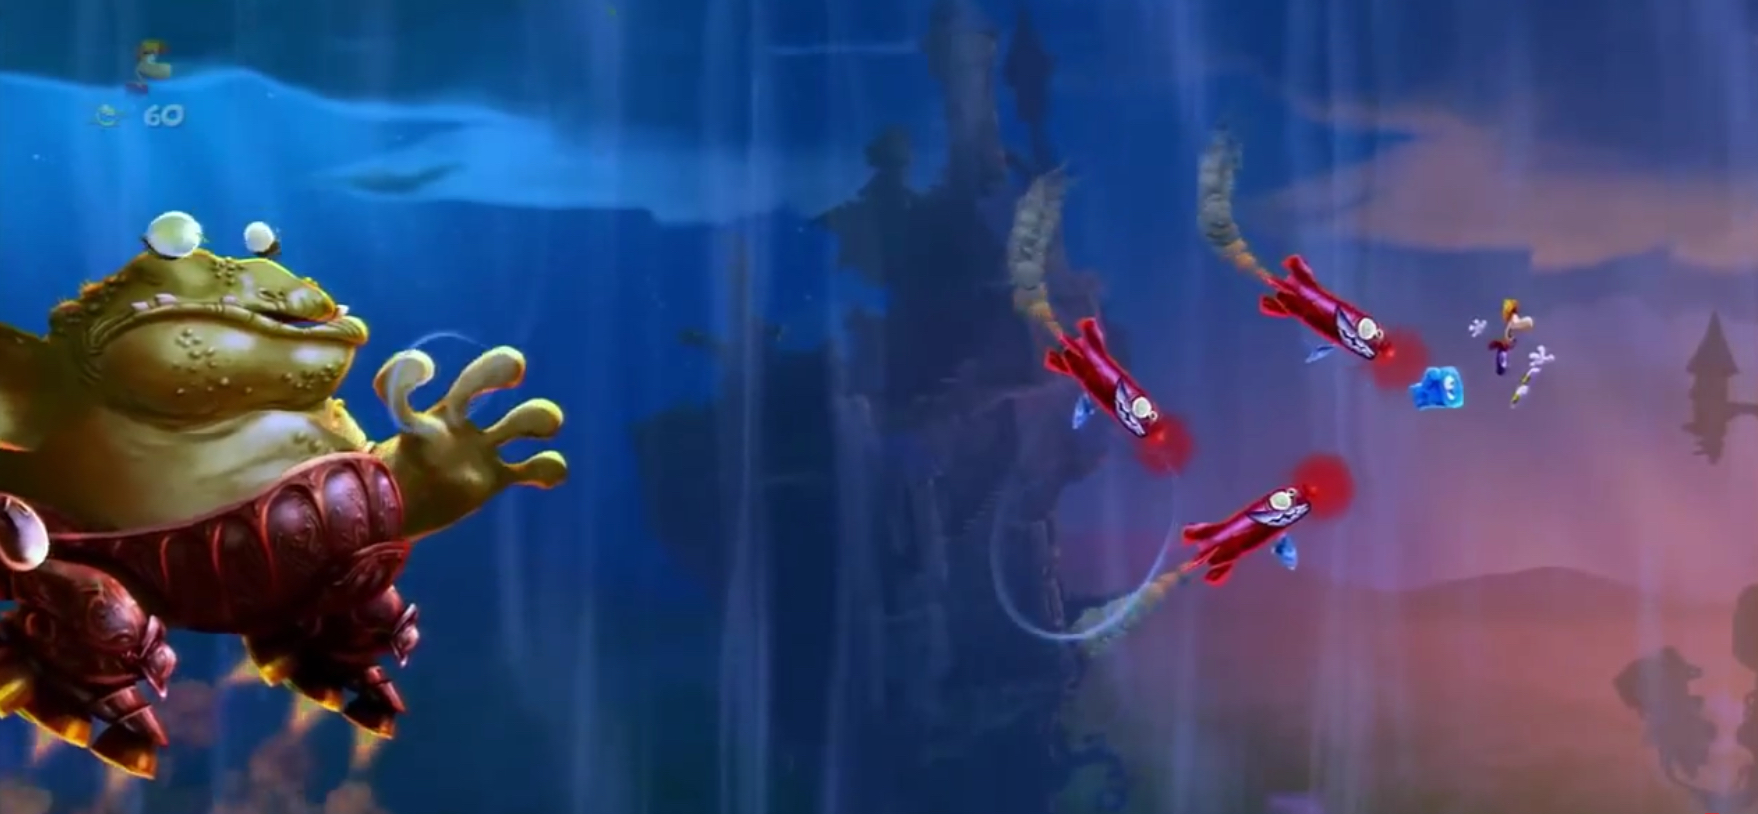 The Beloved Platformer Rayman Legends Is Now Free Via Uplay For A Limited Time